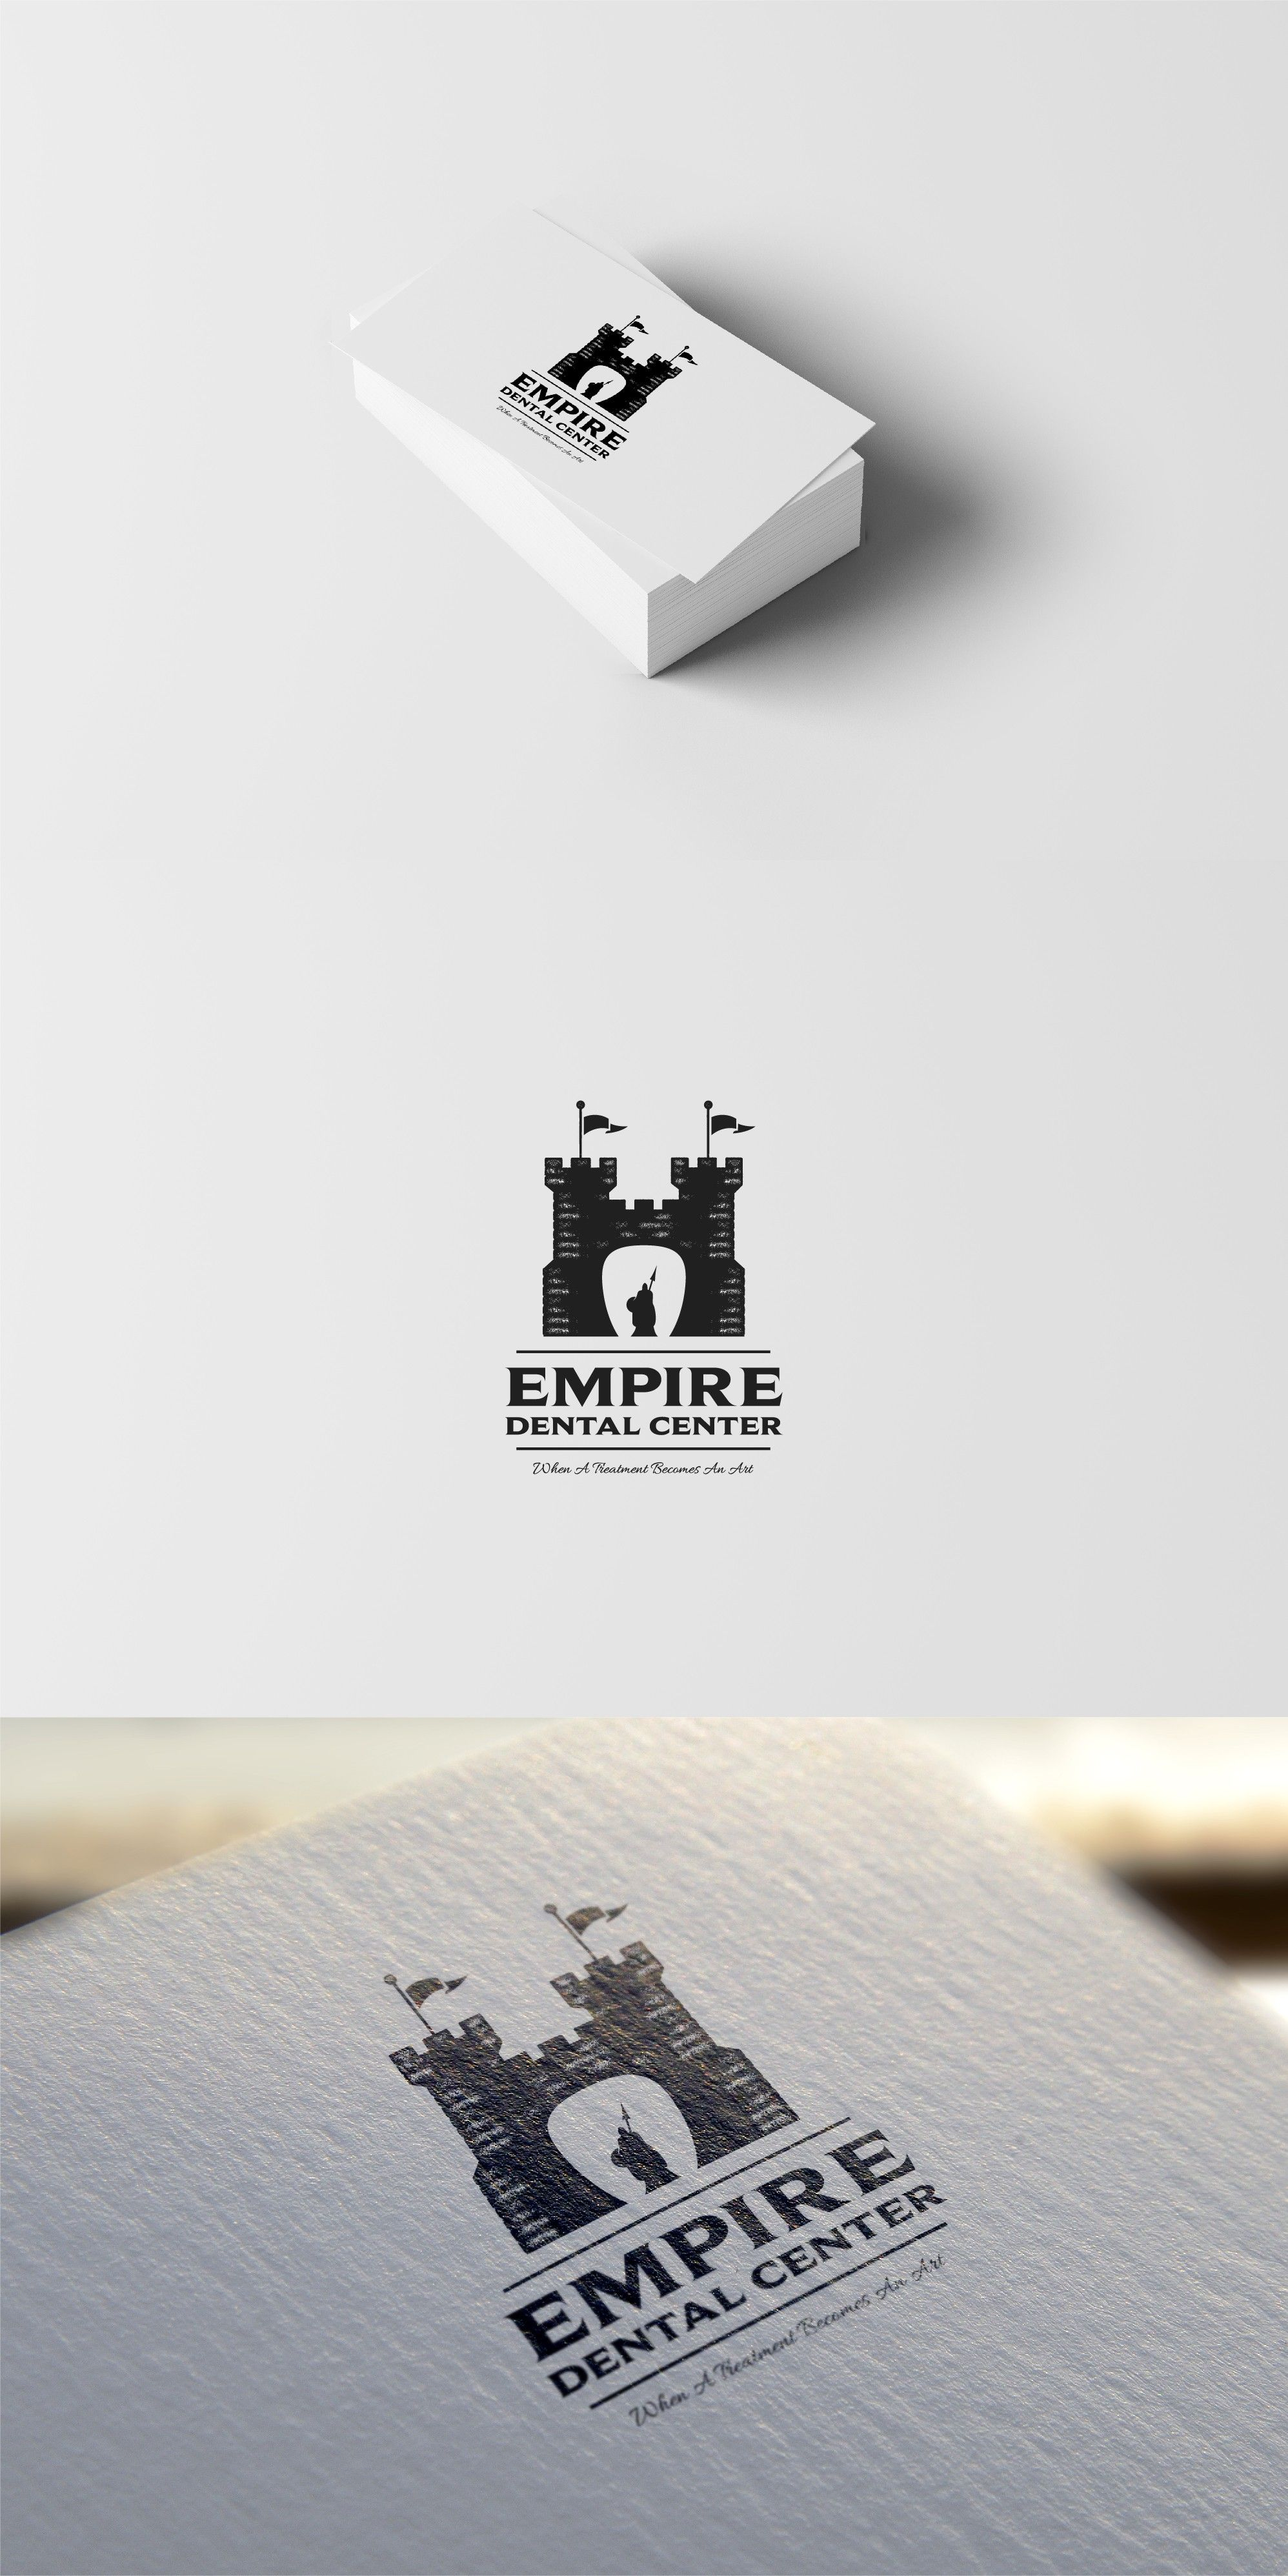 Black and white logo design by Sava Stoic for Empire